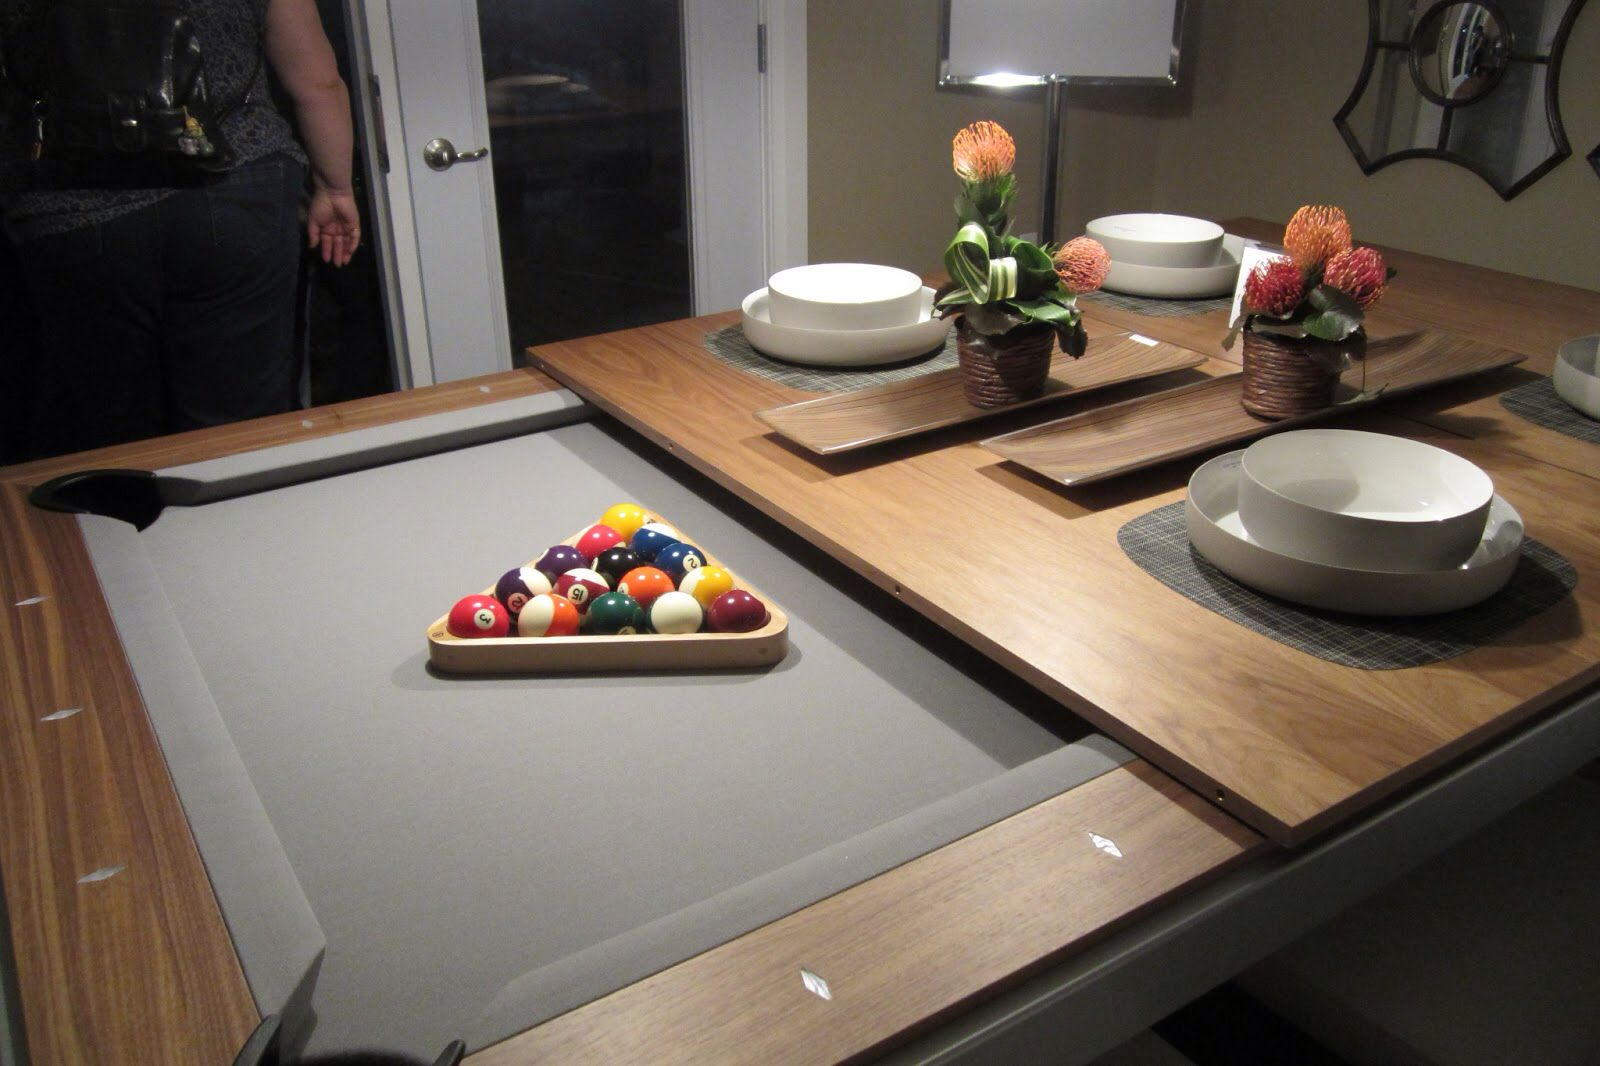 Superieur Pool Table Dining Top AWESOME! That Is What I Want For Ours To Convert Our